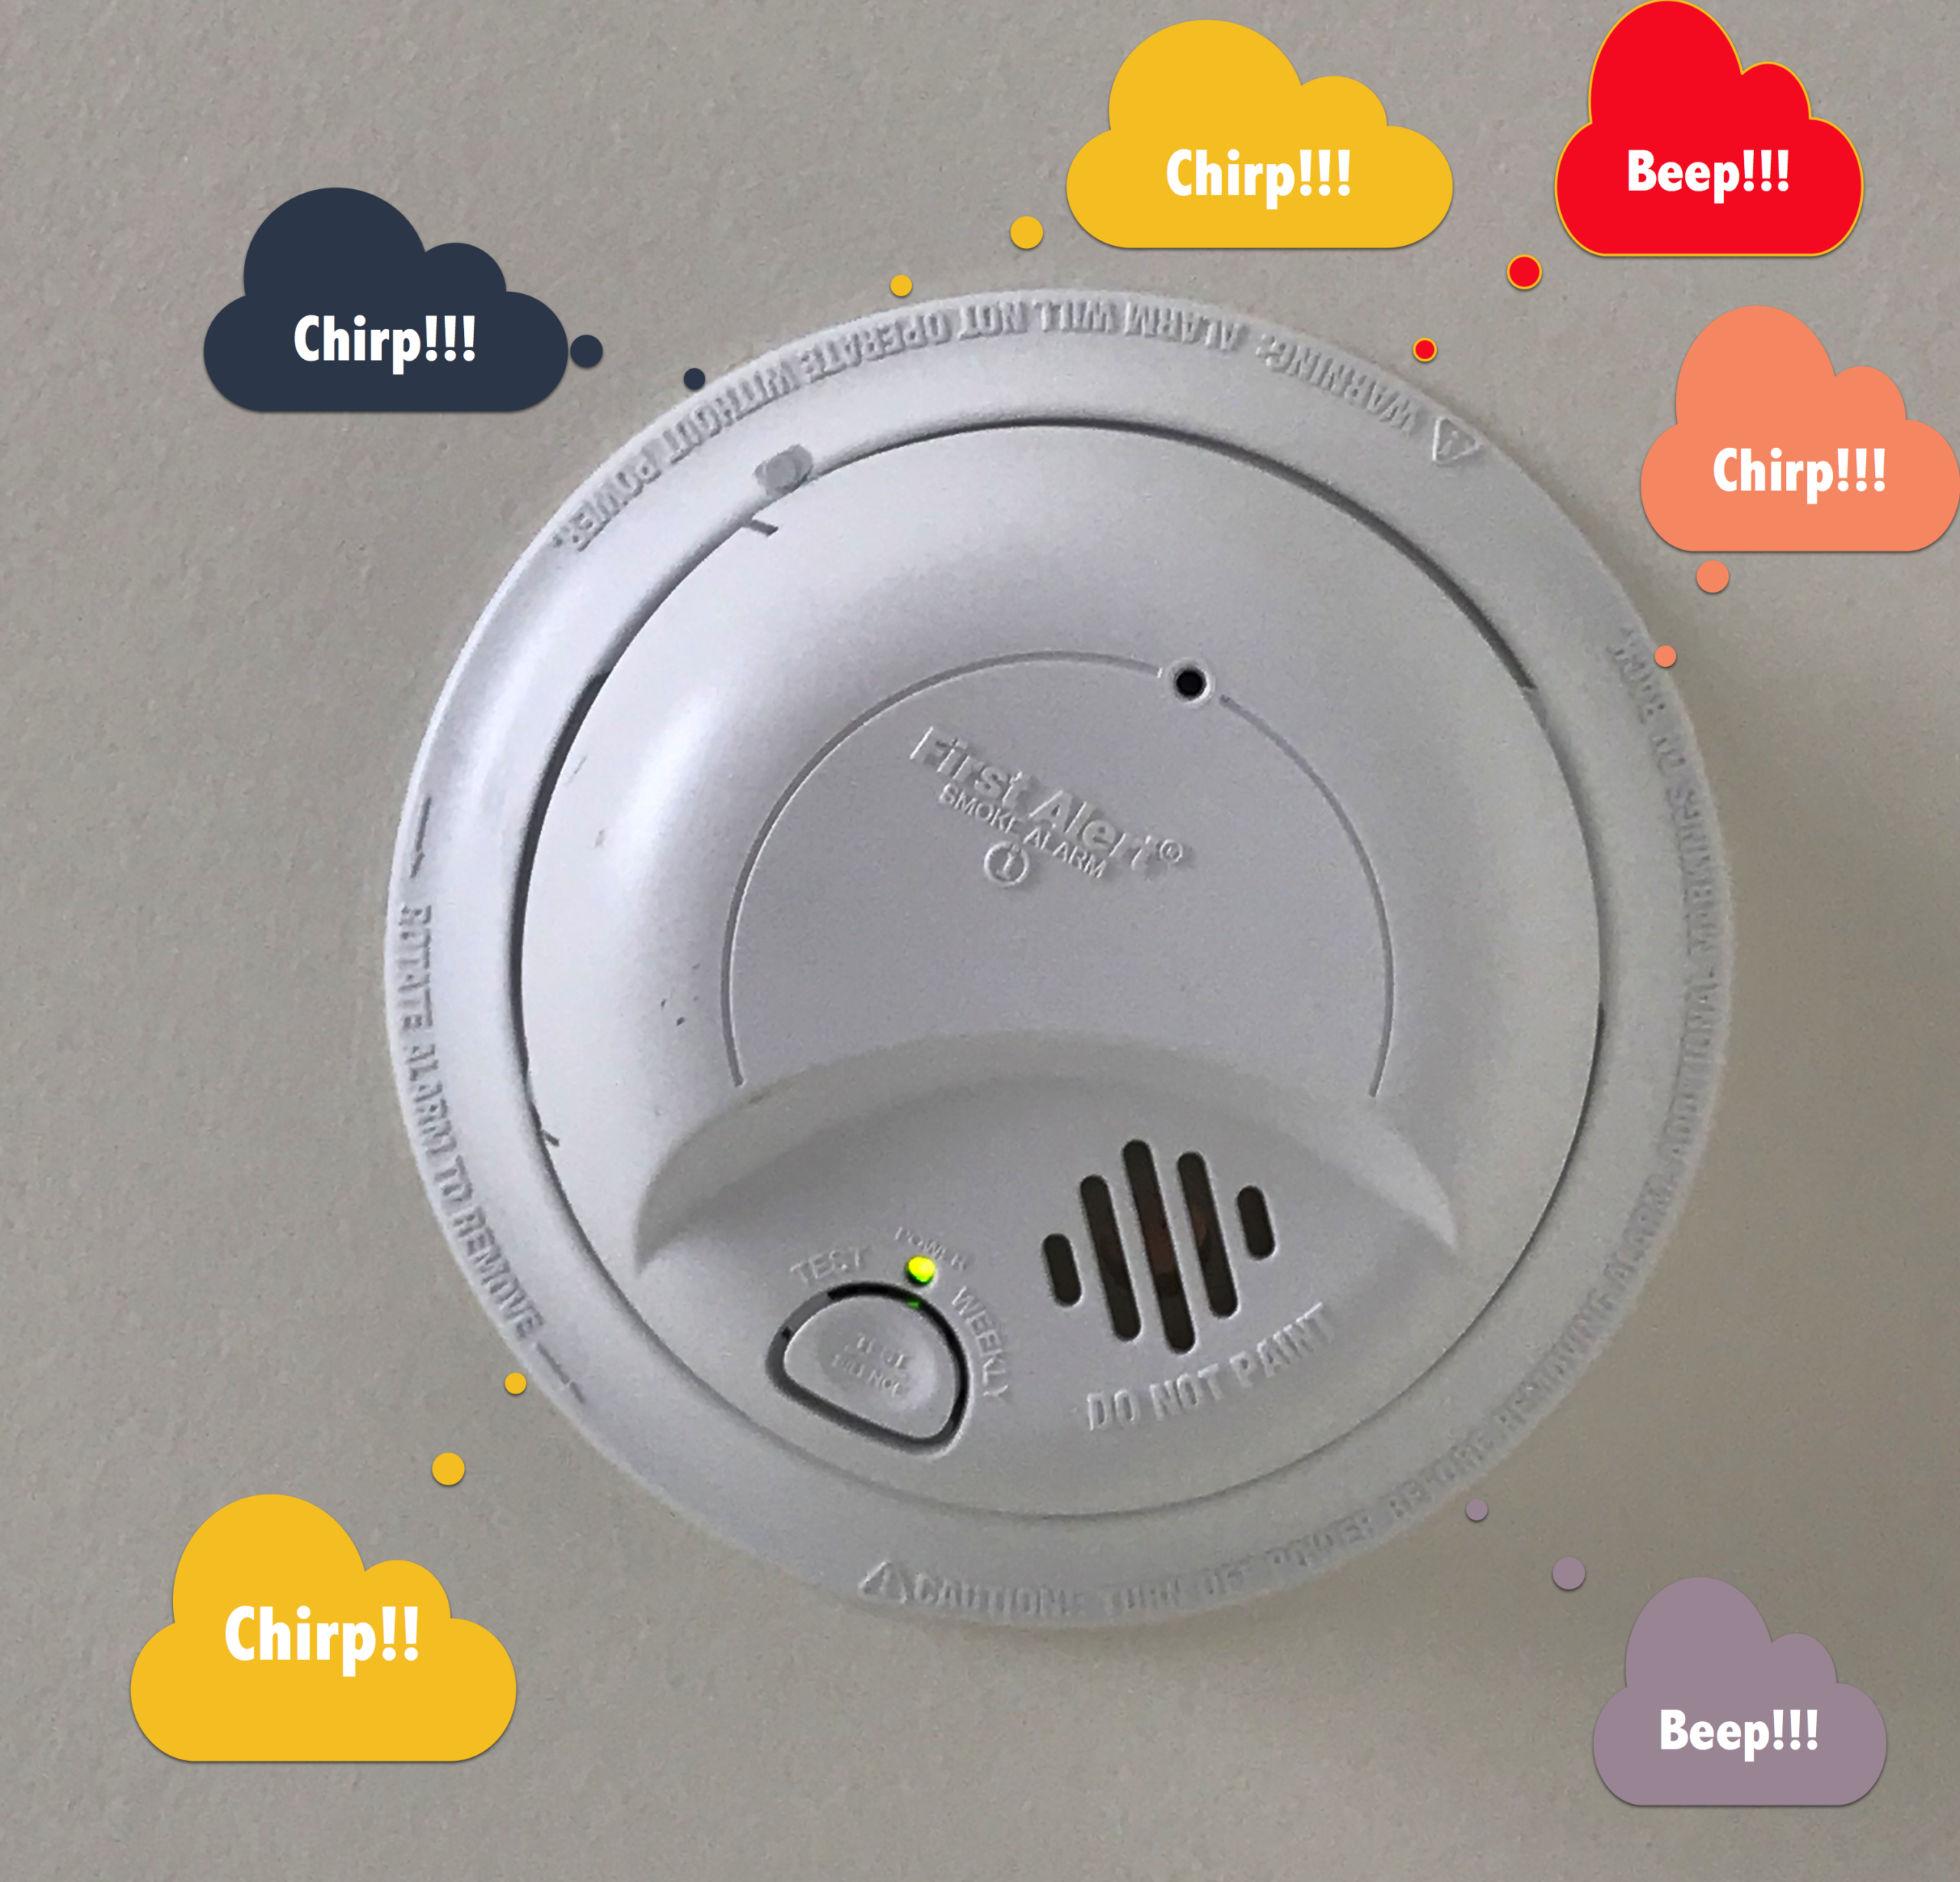 Why is my smoke alarm beeping or chirping intermittently? -Smoke Alarm